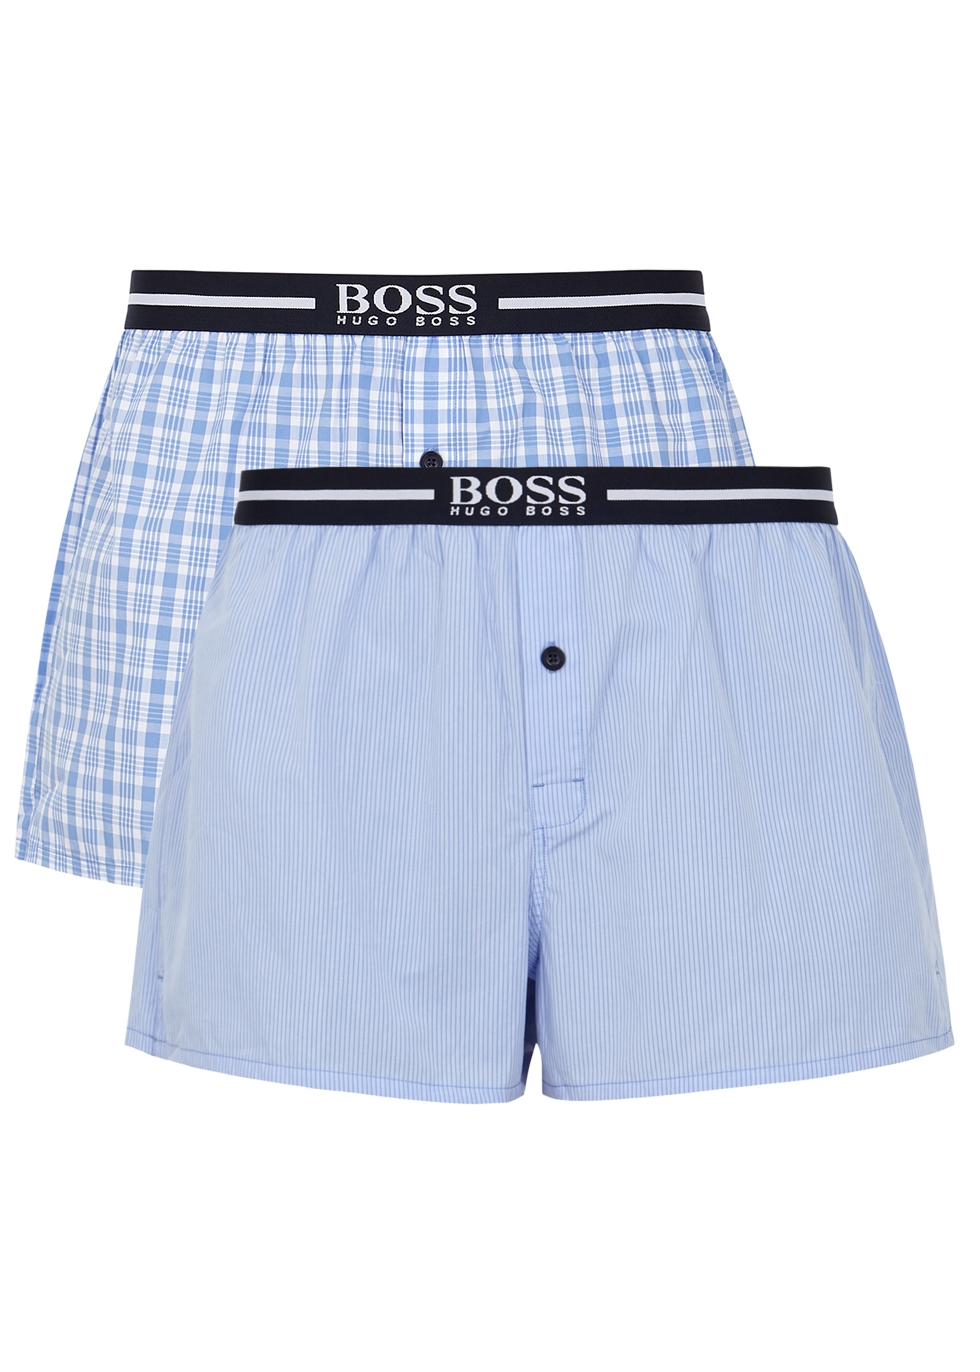 Cotton boxer shorts - set of two